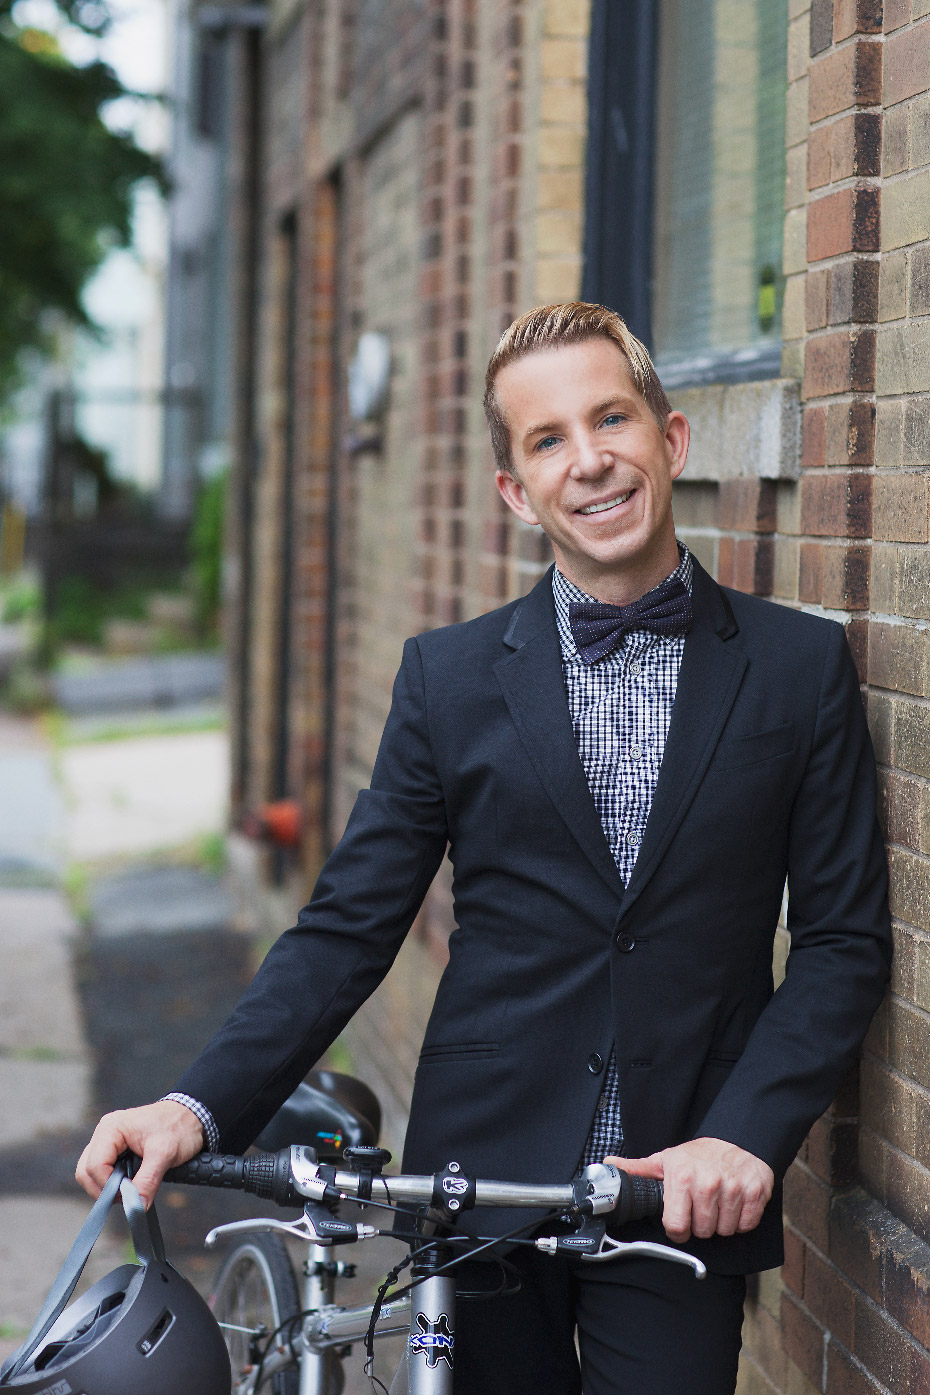 Stacey Van Berkel Photography I Fred Connors dressed in dapper suit & bowtie with a bicycle I Halifax, Nova Scotia, Canada